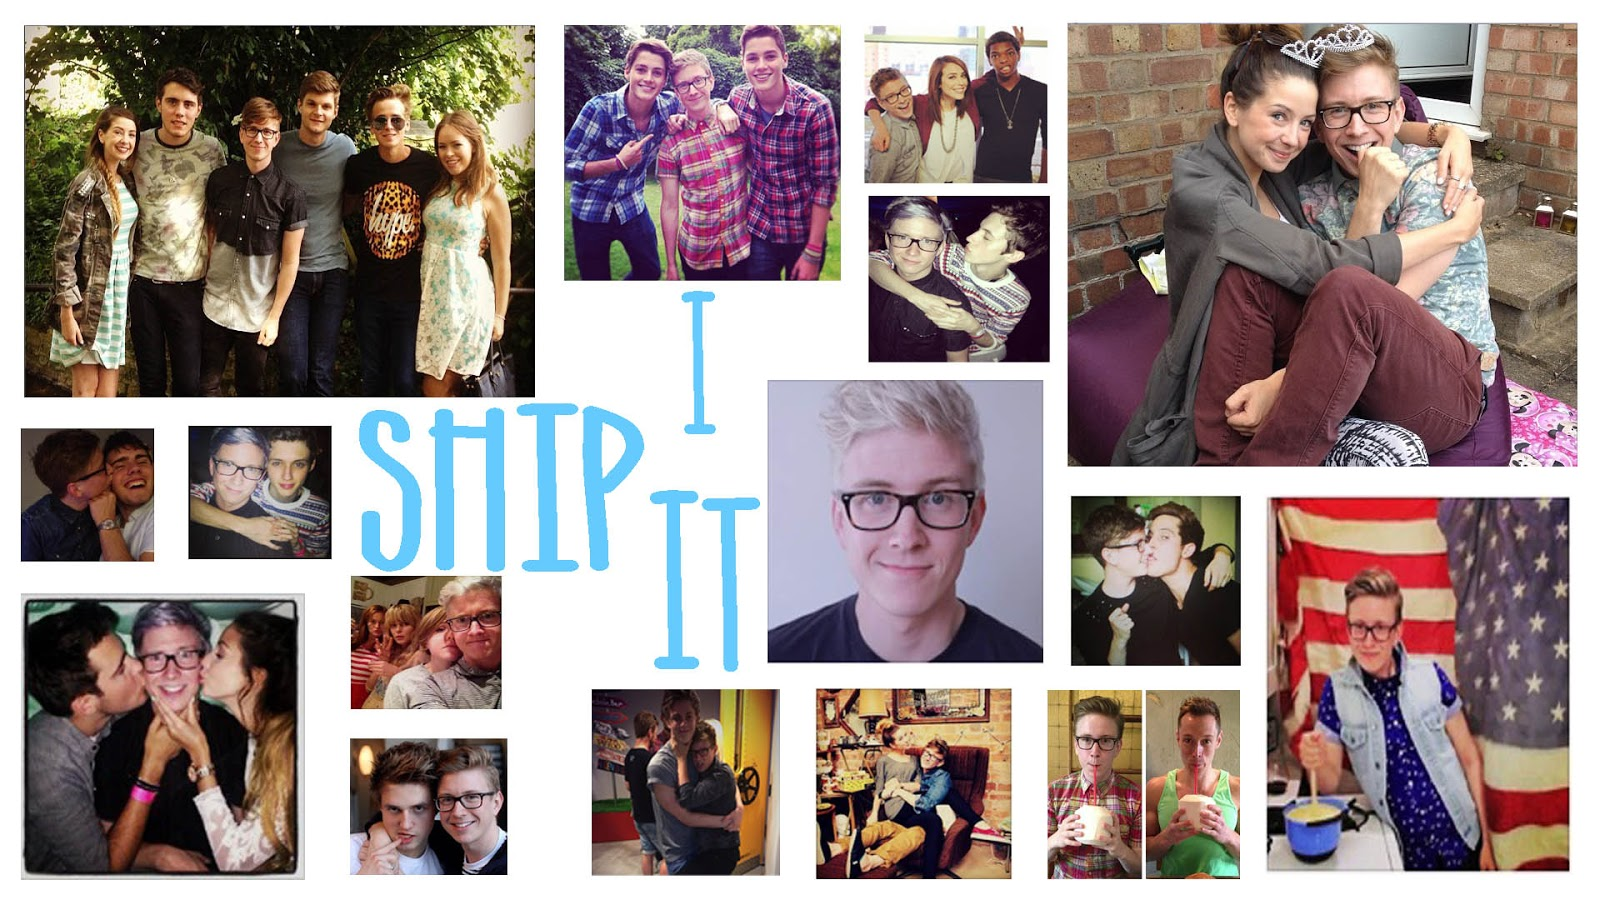 Kristazzi: Day 4 - I Ship It (OTP) | The YouTuber Challenge